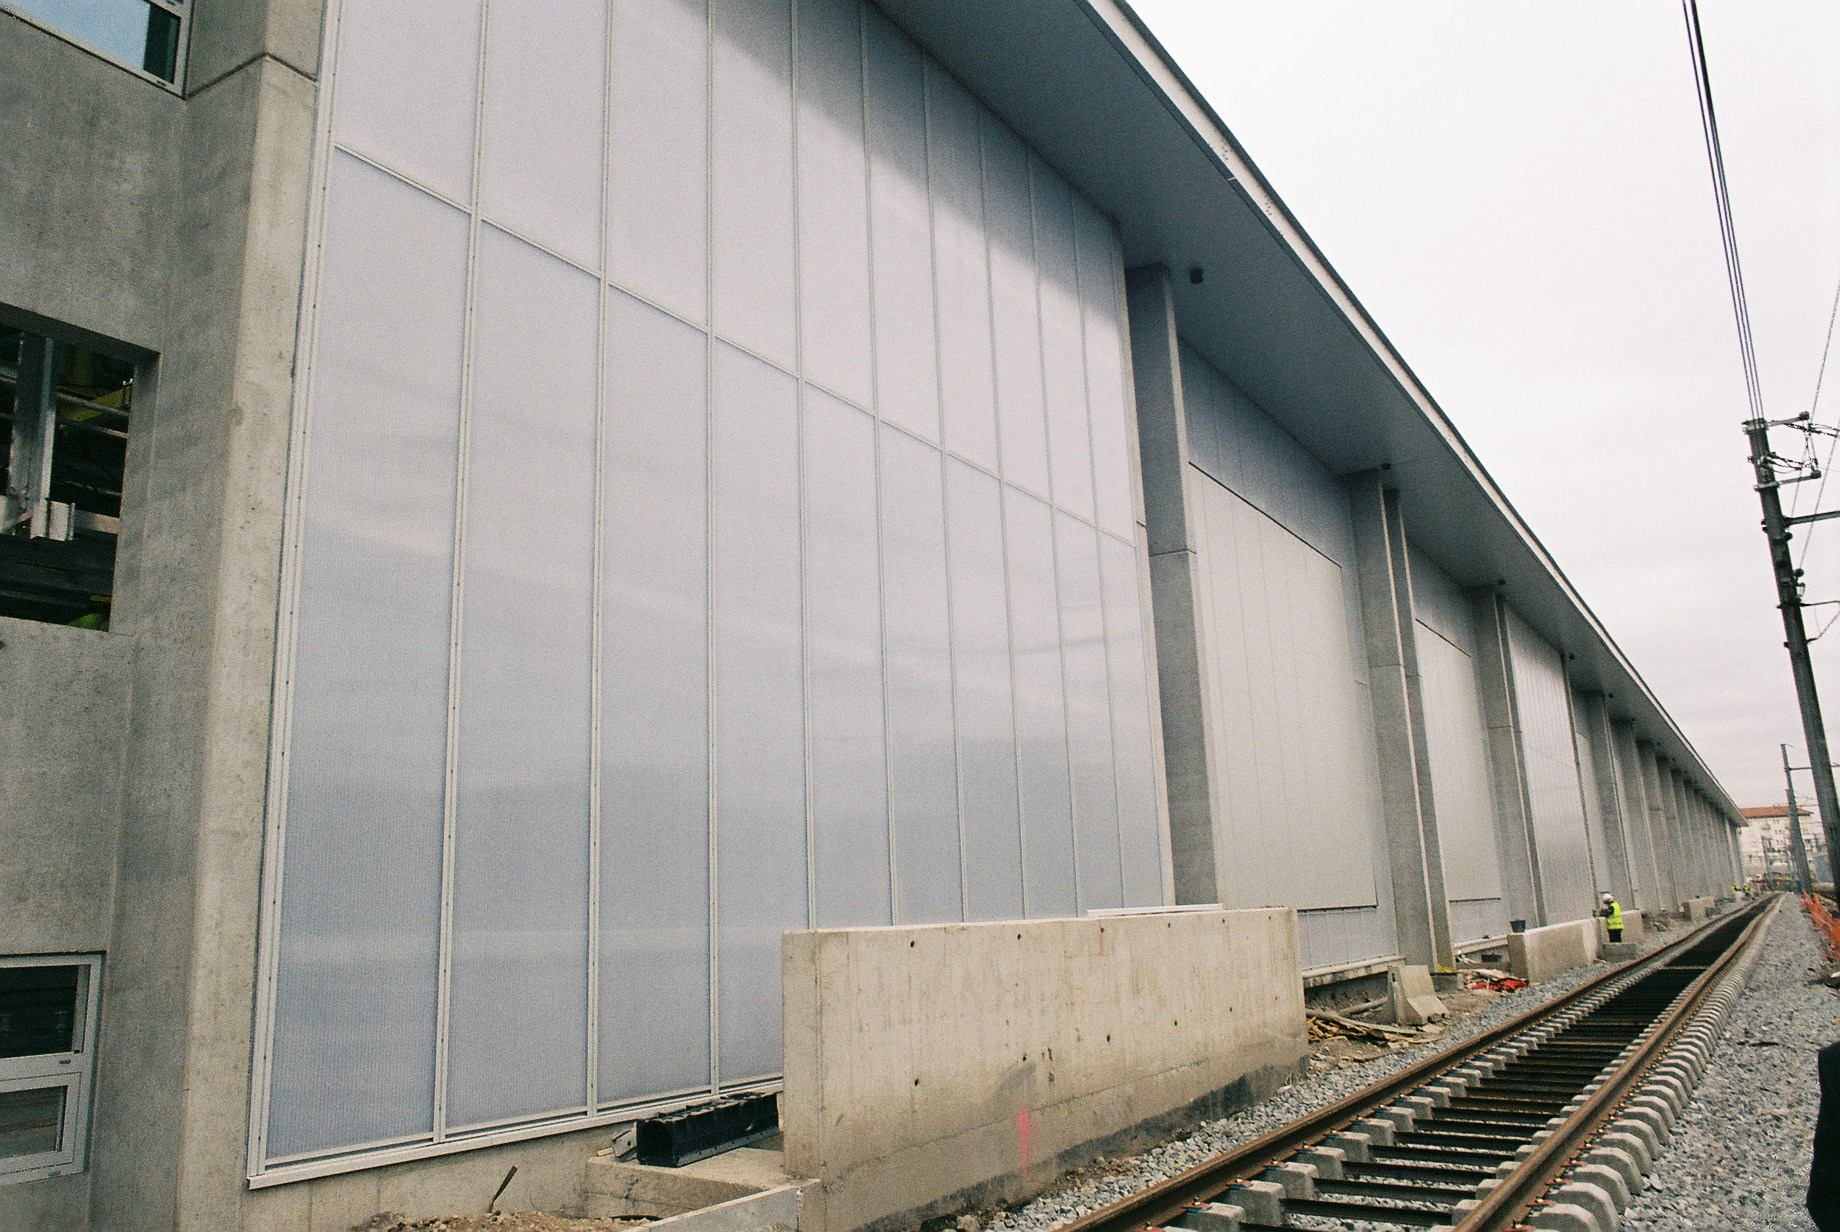 TVG Train Maintenance Facility in France